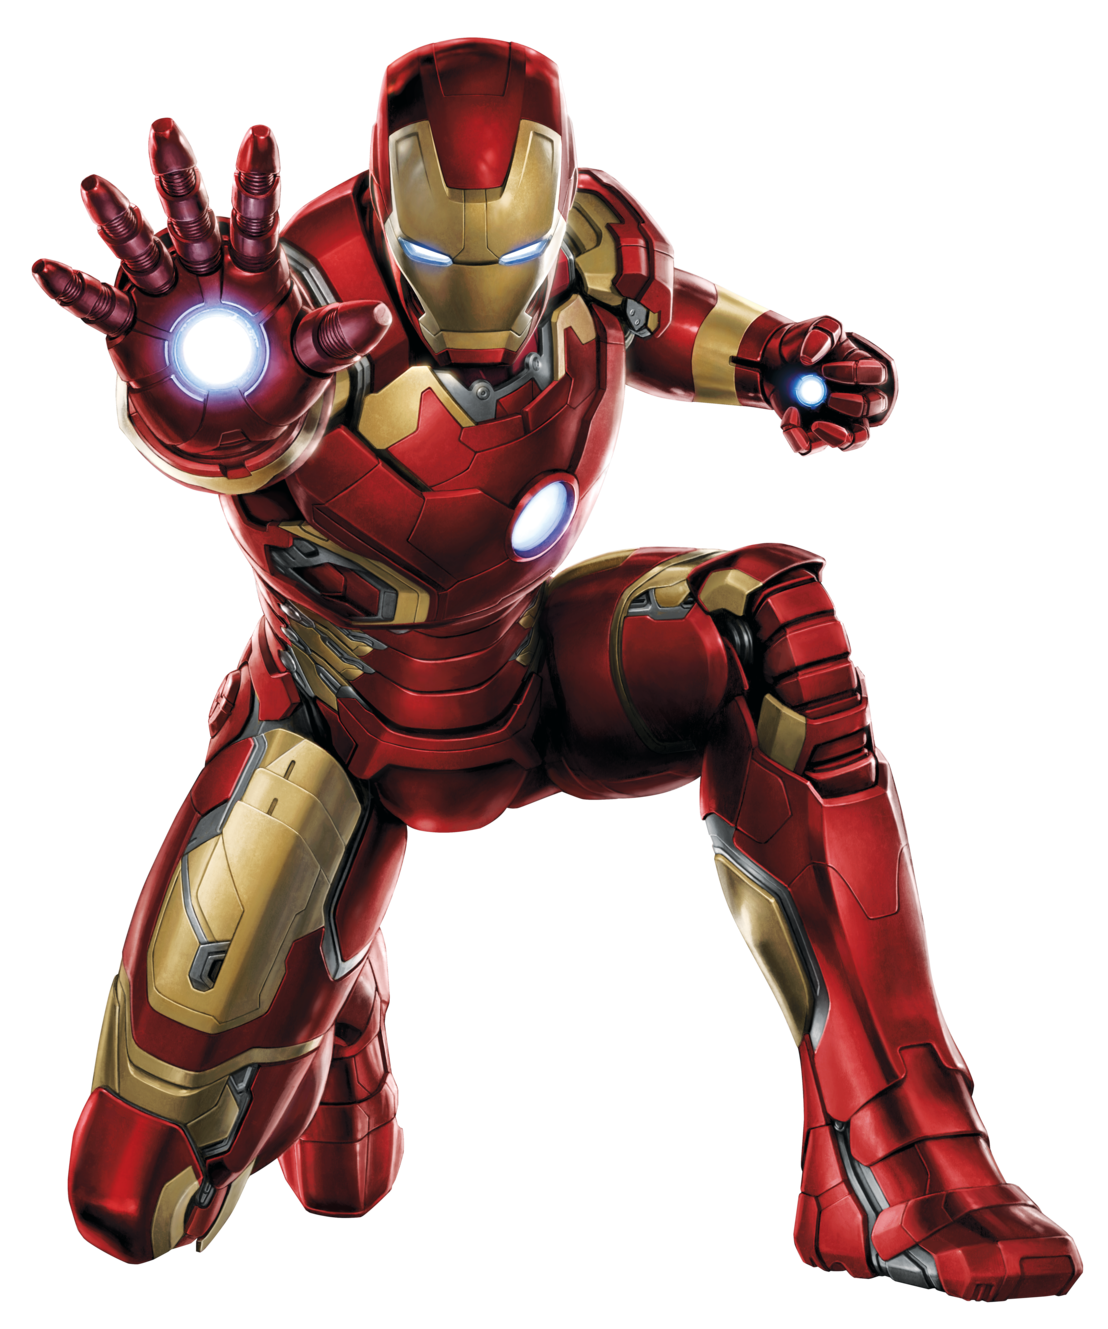 Iron Man Picture PNG Image